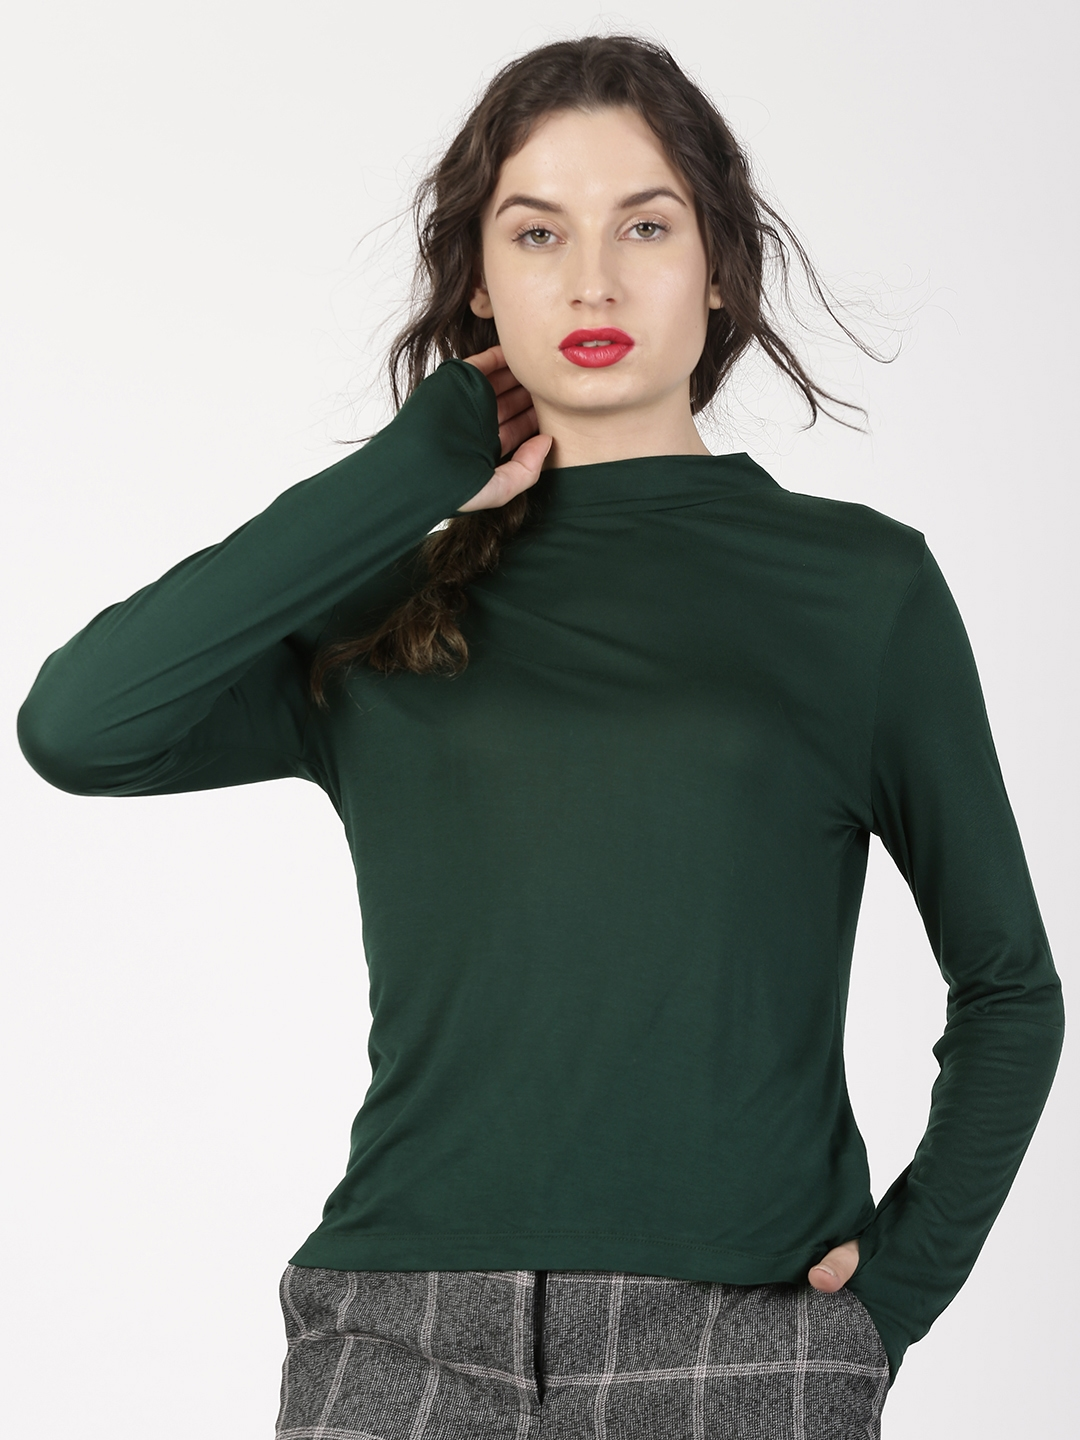 46929fa8643997 ether Women Green Solid High Neck Long Sleeve With Thumbhole Round Neck  T-shirt